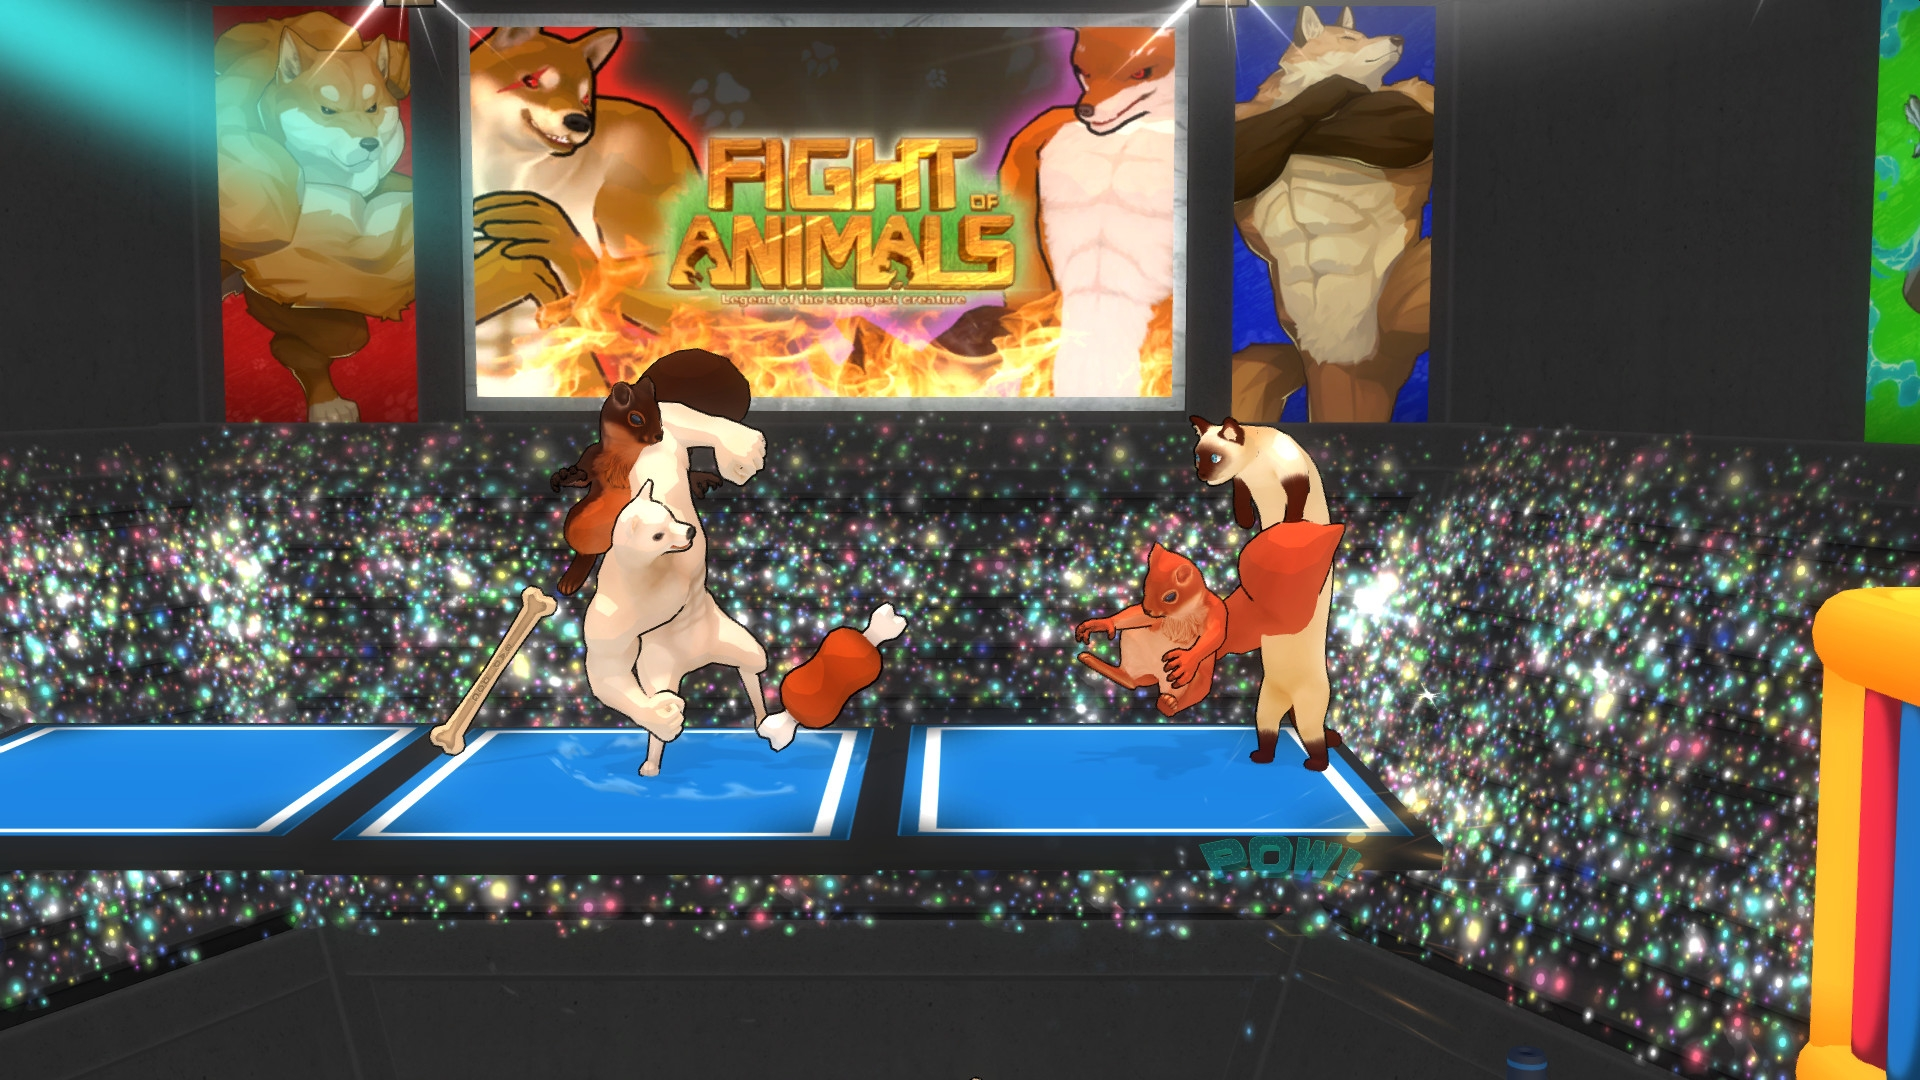 Fight Of Animals: Arena Brings The Meme Fighters Into A Larger Arena